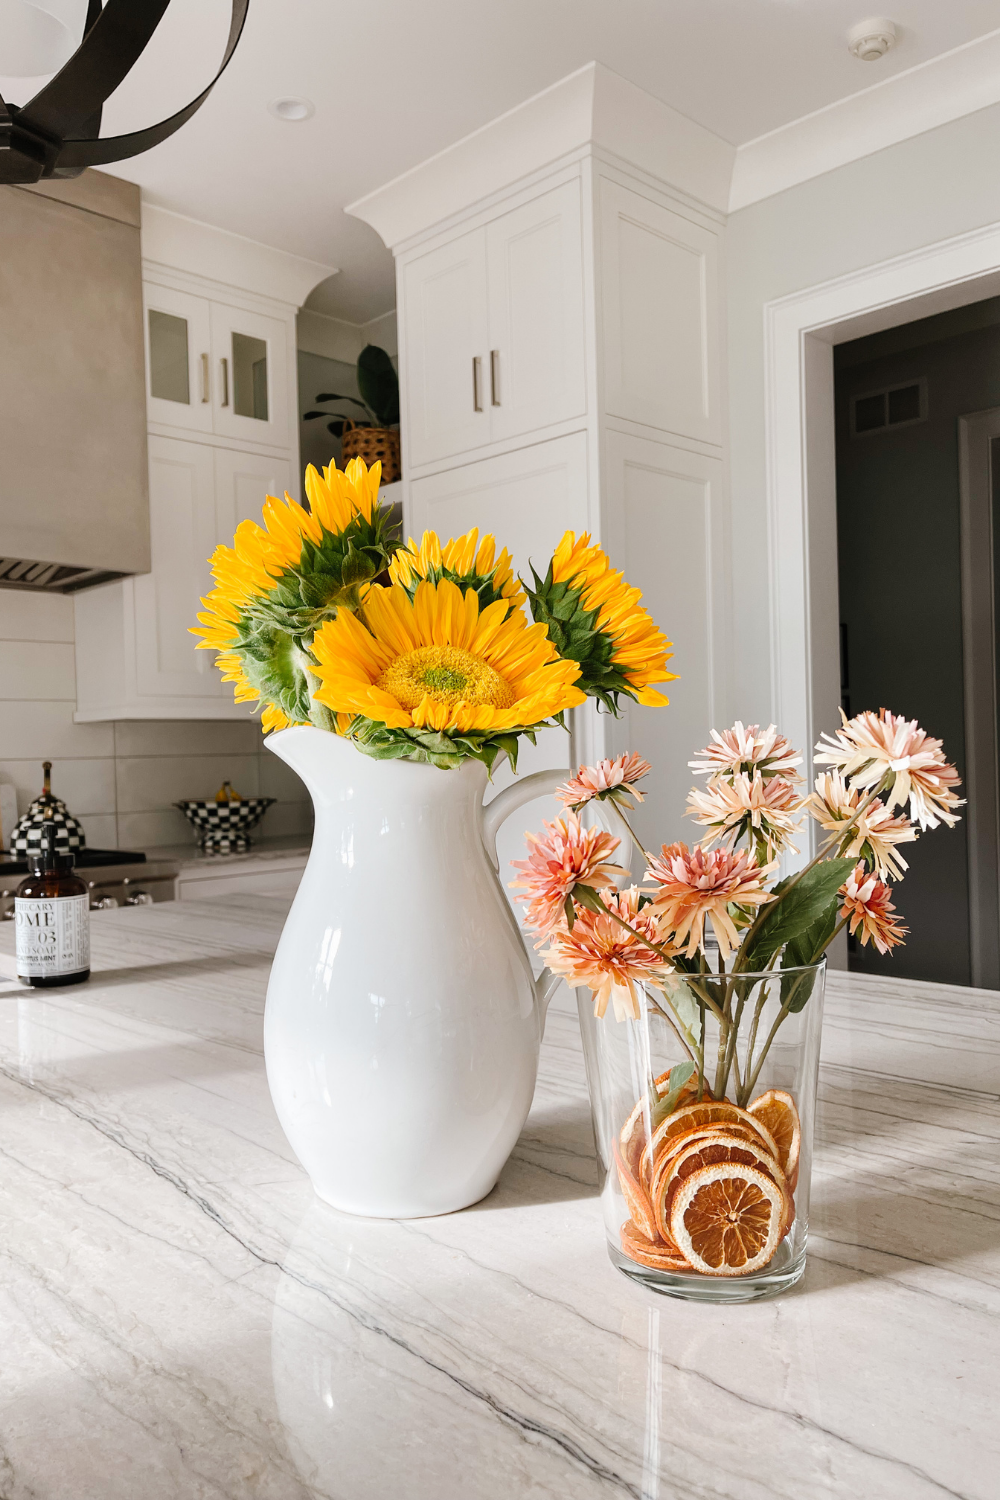 How to transition to fall home decor: sunflowers